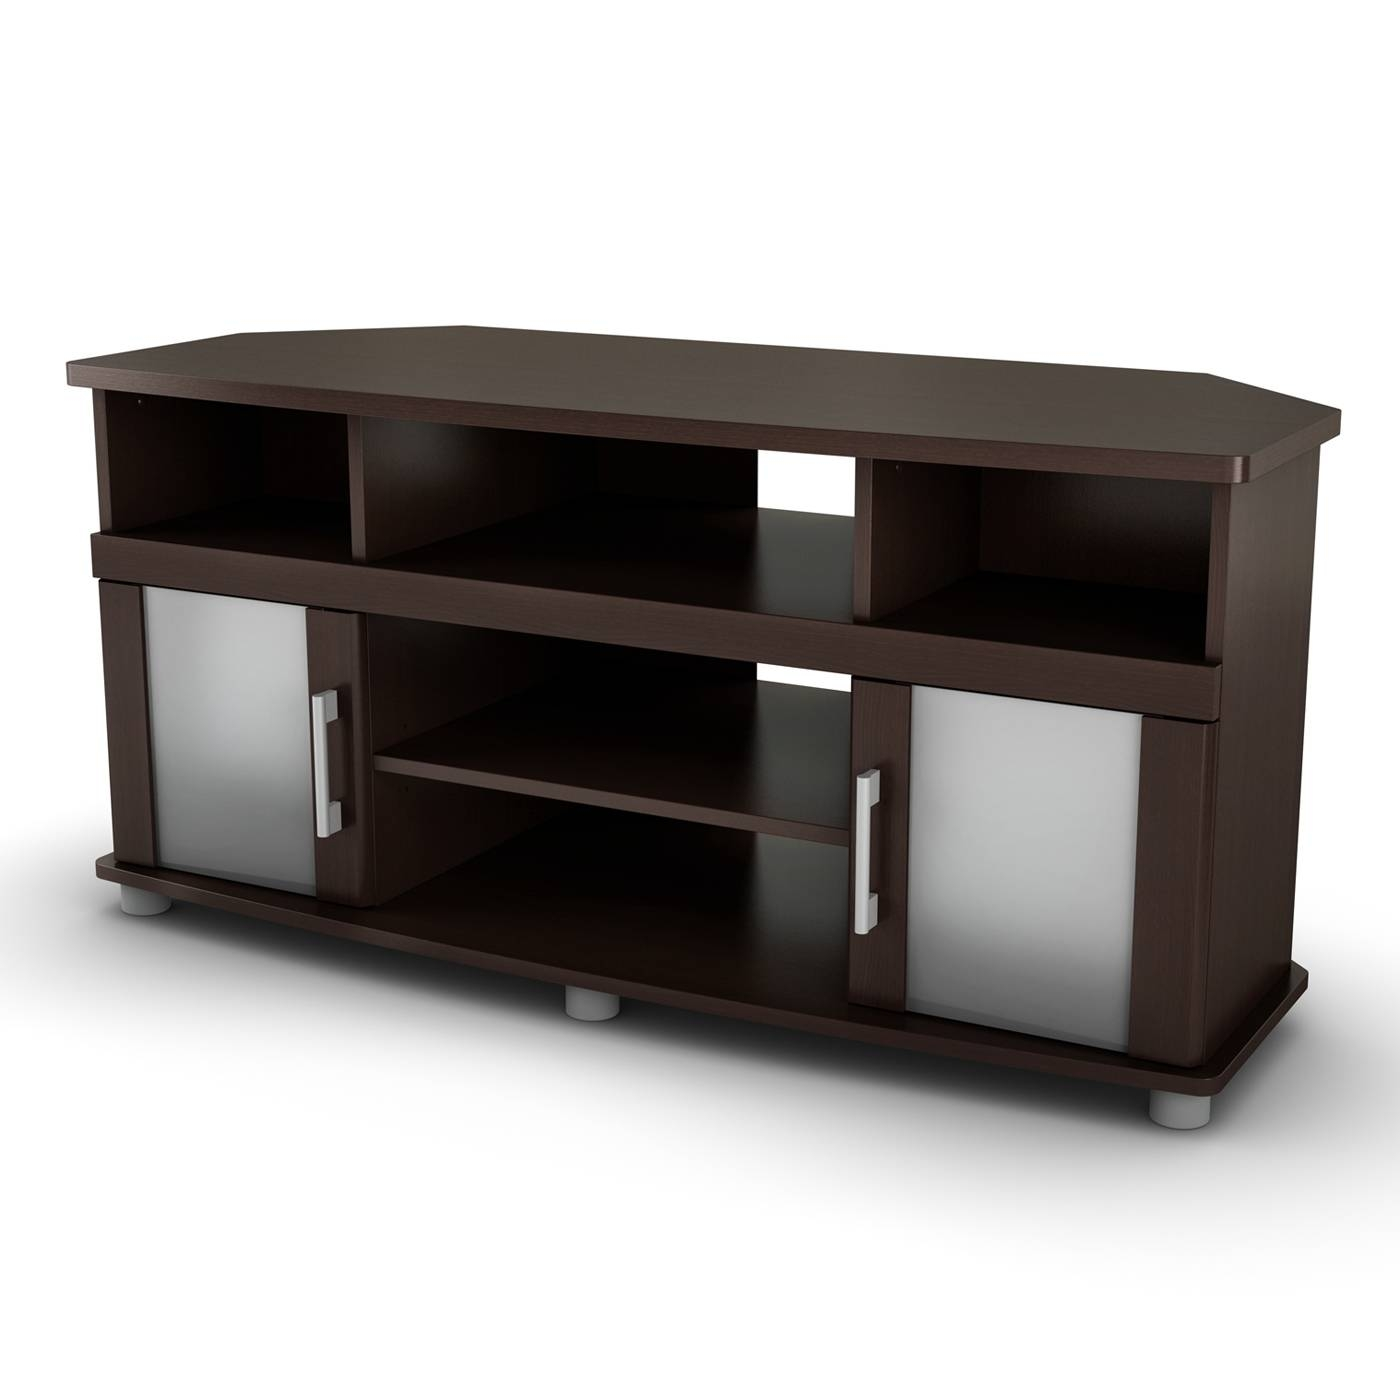 Lowes Tv Stands With Elegant Brown Corner Design With Blur Glass inside Corner Tv Unit With Glass Doors (Image 8 of 15)